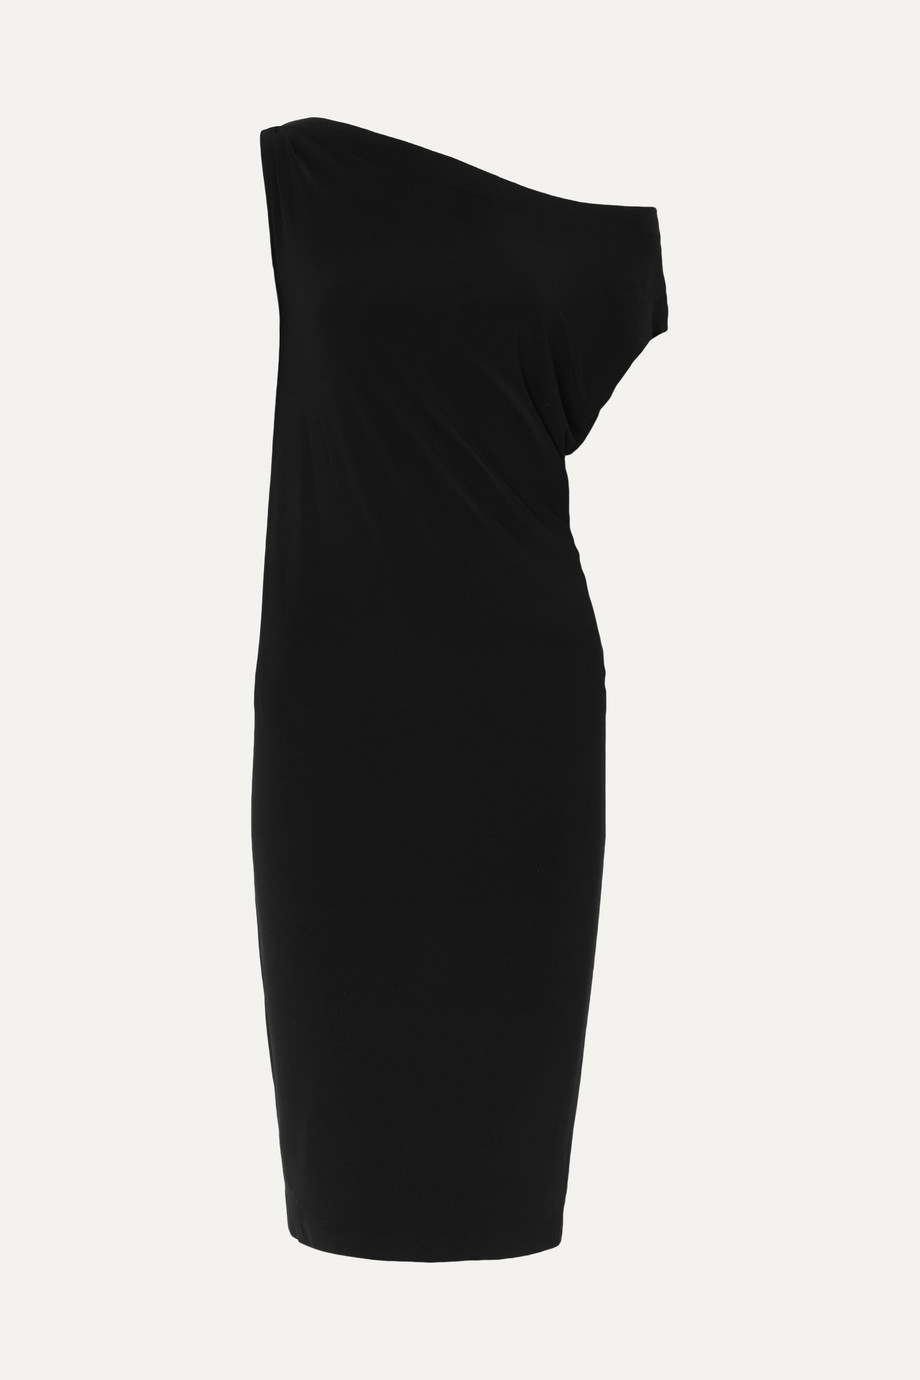 Norma Kamali Stretch-jersey dress